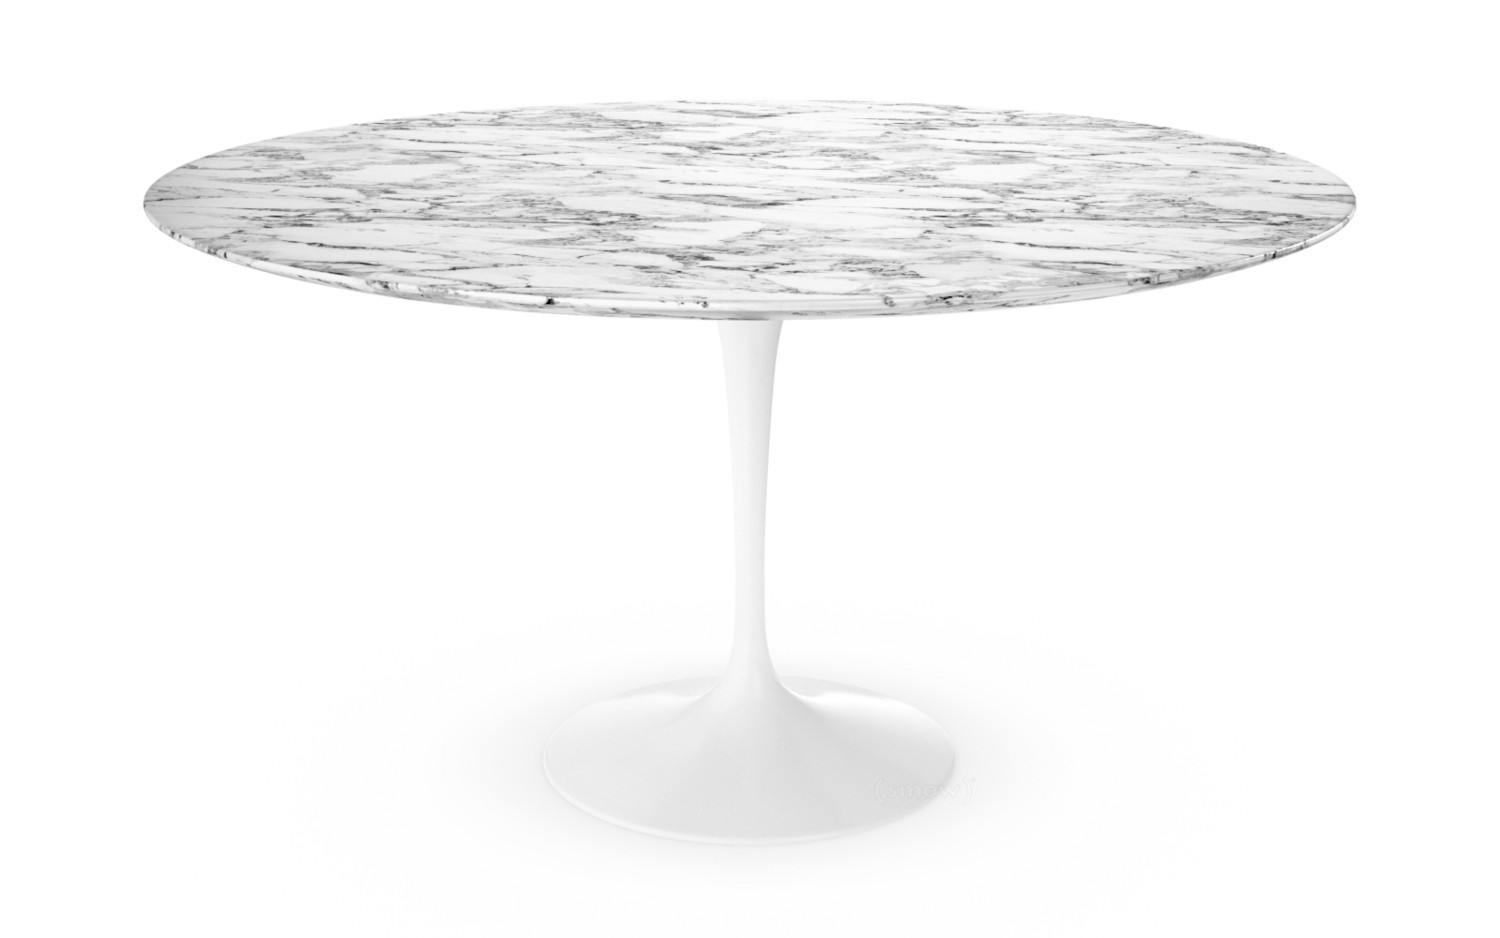 Charmant Saarinen Round Dining Table 137 Cm|White|Arabescato Marble (white With Grey  Tones